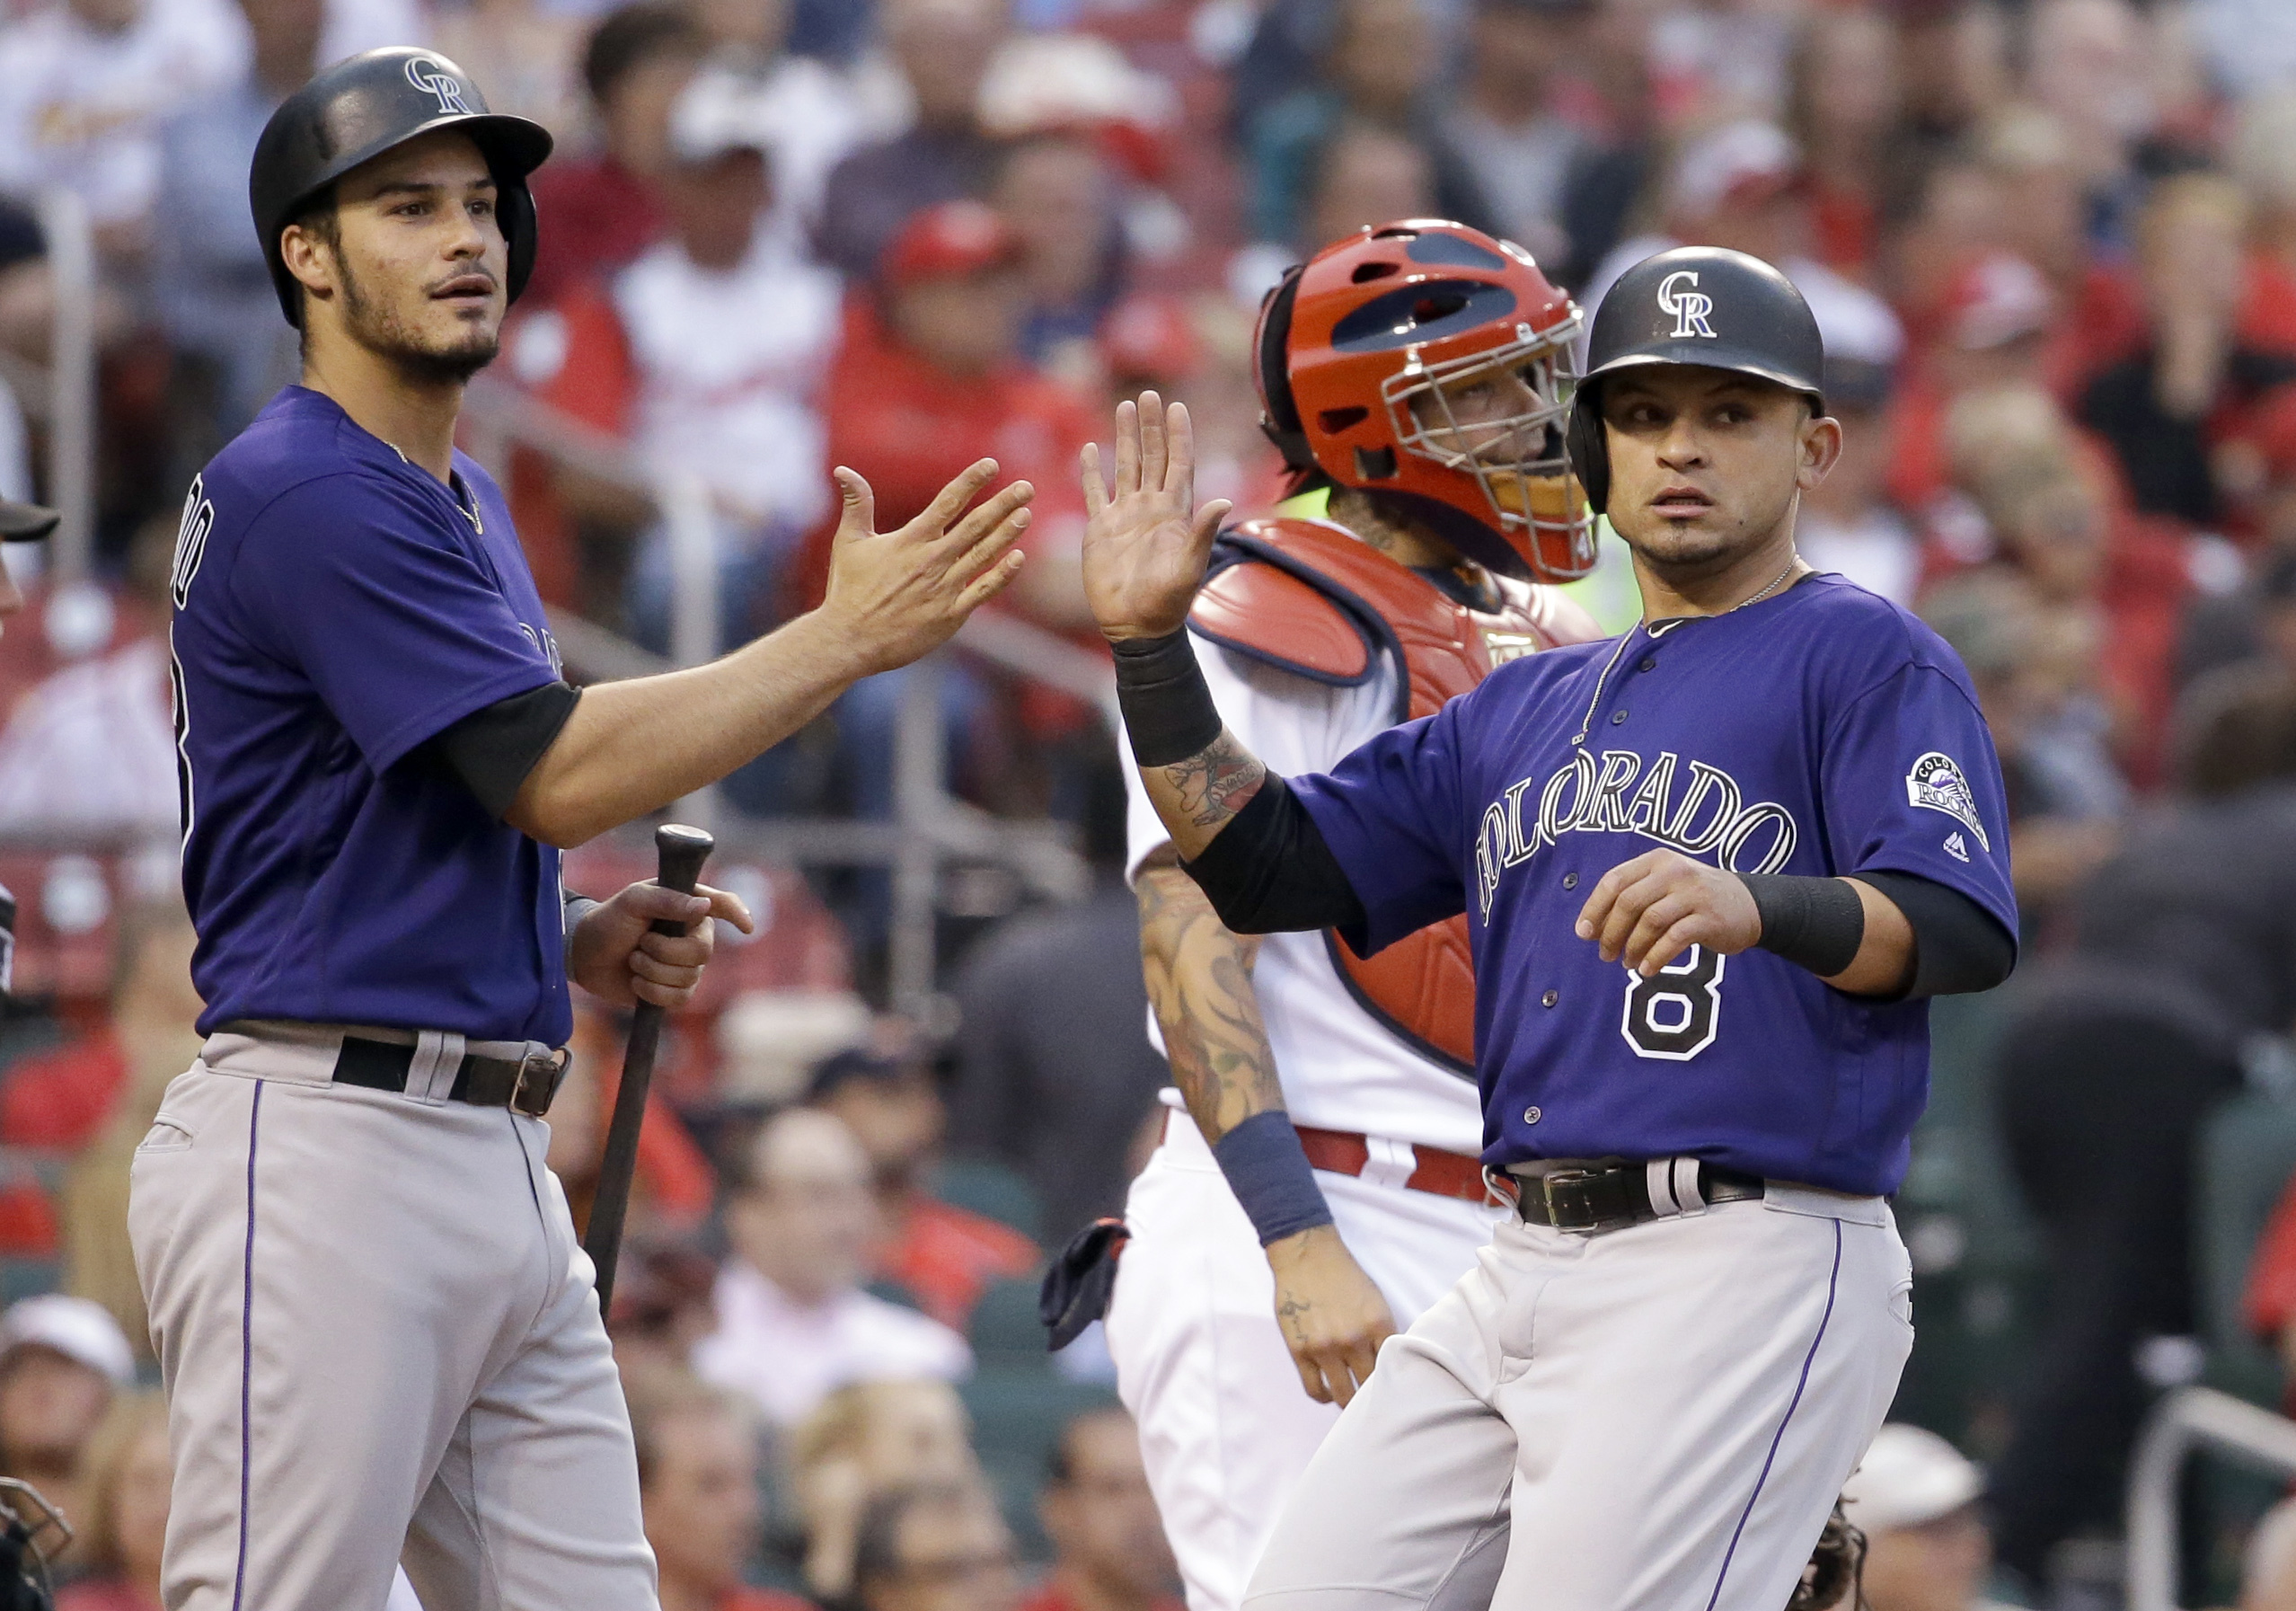 Colorado Rockies' Nolan Arenado, left, and Gerardo Parra, right, score past St. Louis Cardinals catcher Yadier Molina on a single by Daniel Descalso during the fourth inning of a baseball game Thursday, May 19, 2016, in St. Louis. (AP Photo/Jeff Roberson)